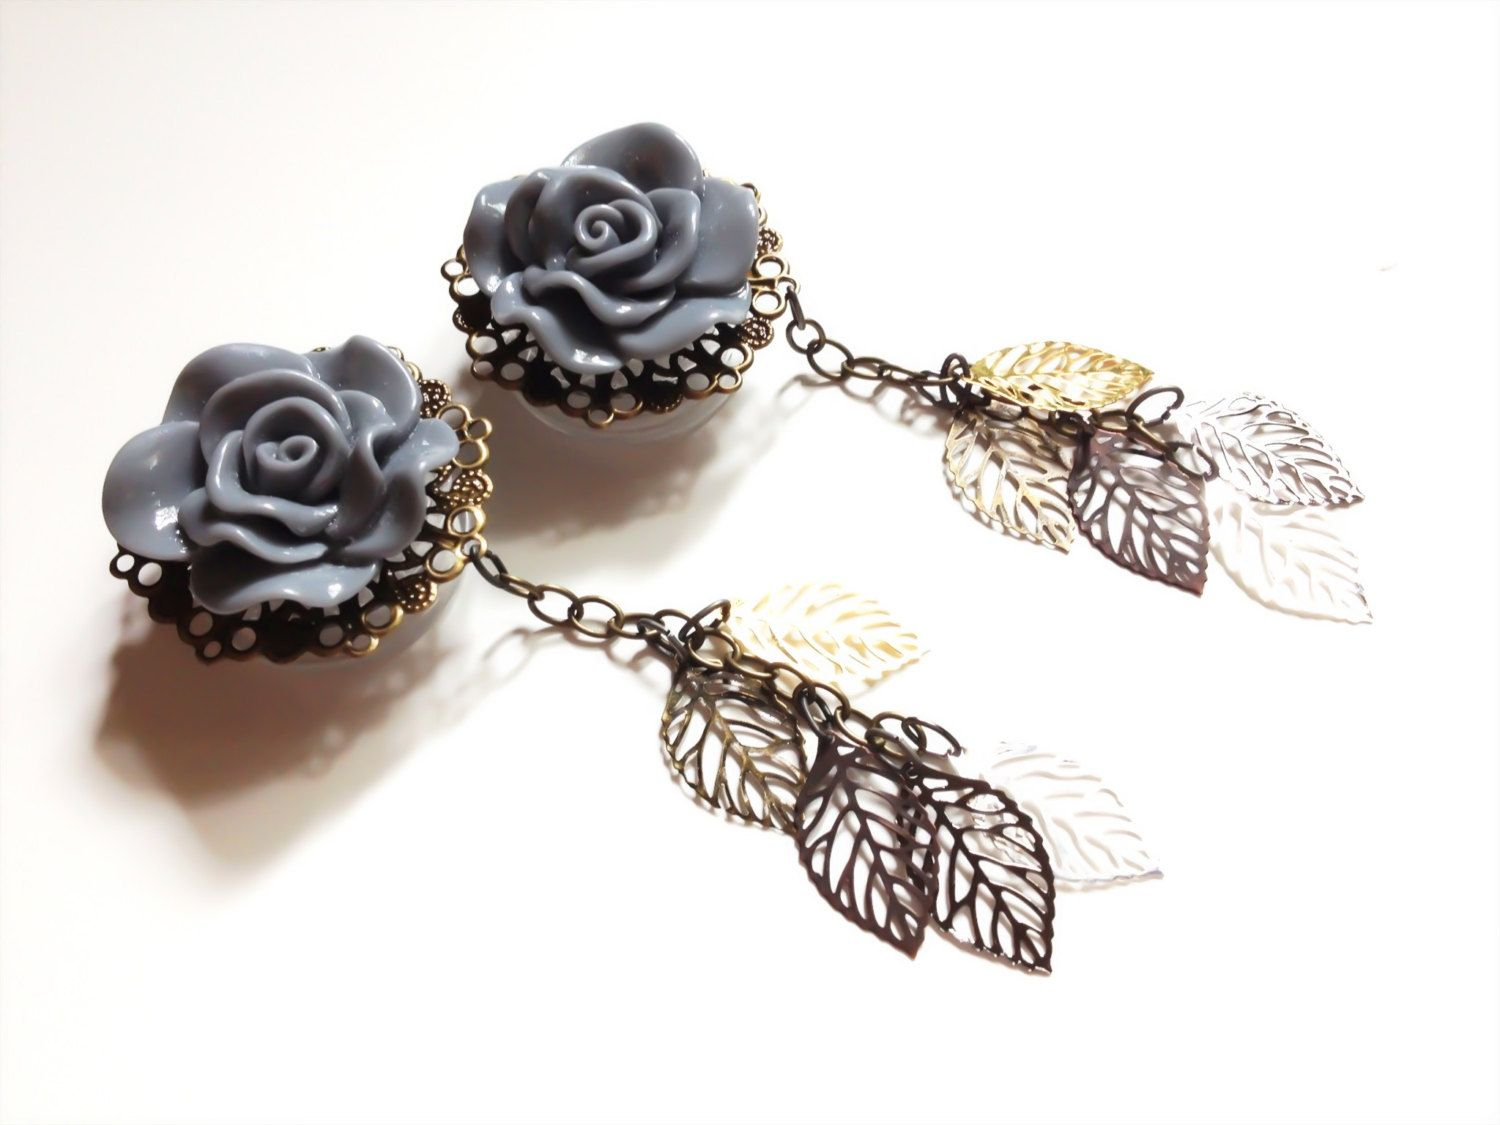 Pair of Black Flower Wood Tunnels and Steel Pendant Necklace 2g 1 inch